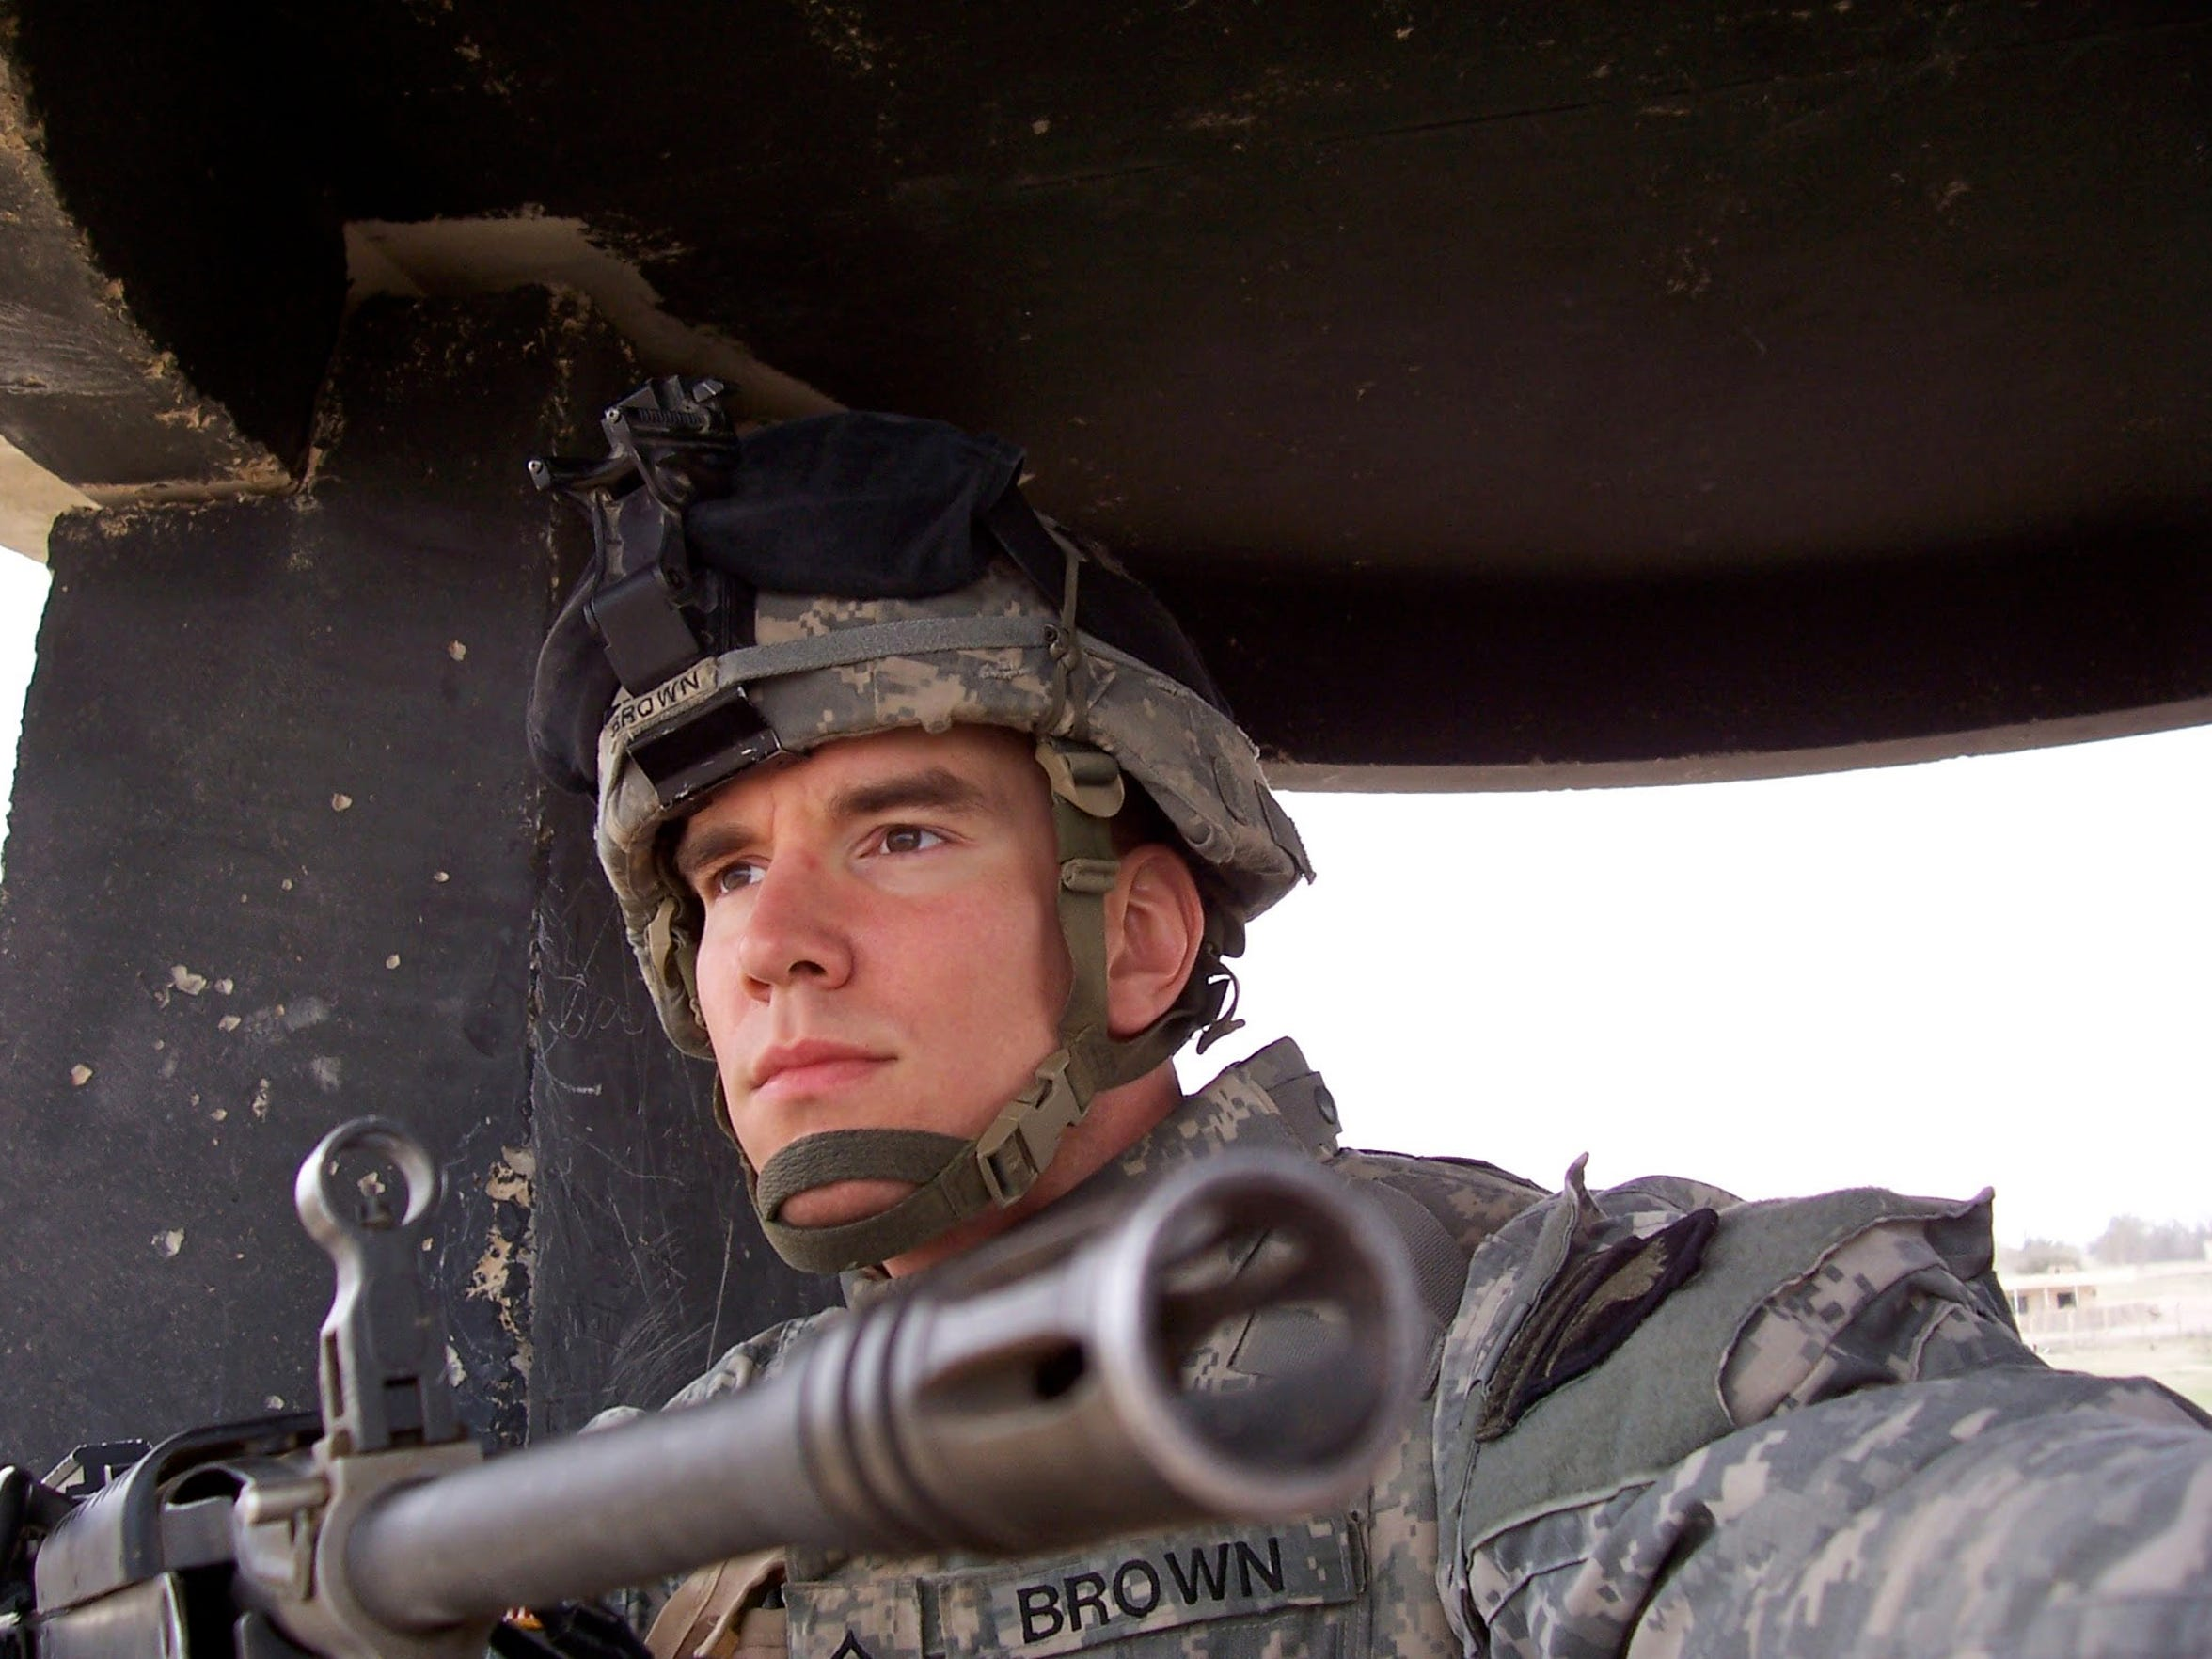 Darren Brown is photogrphed in the gate watch tower at FOB Speicher in Iraq some time in 2006.